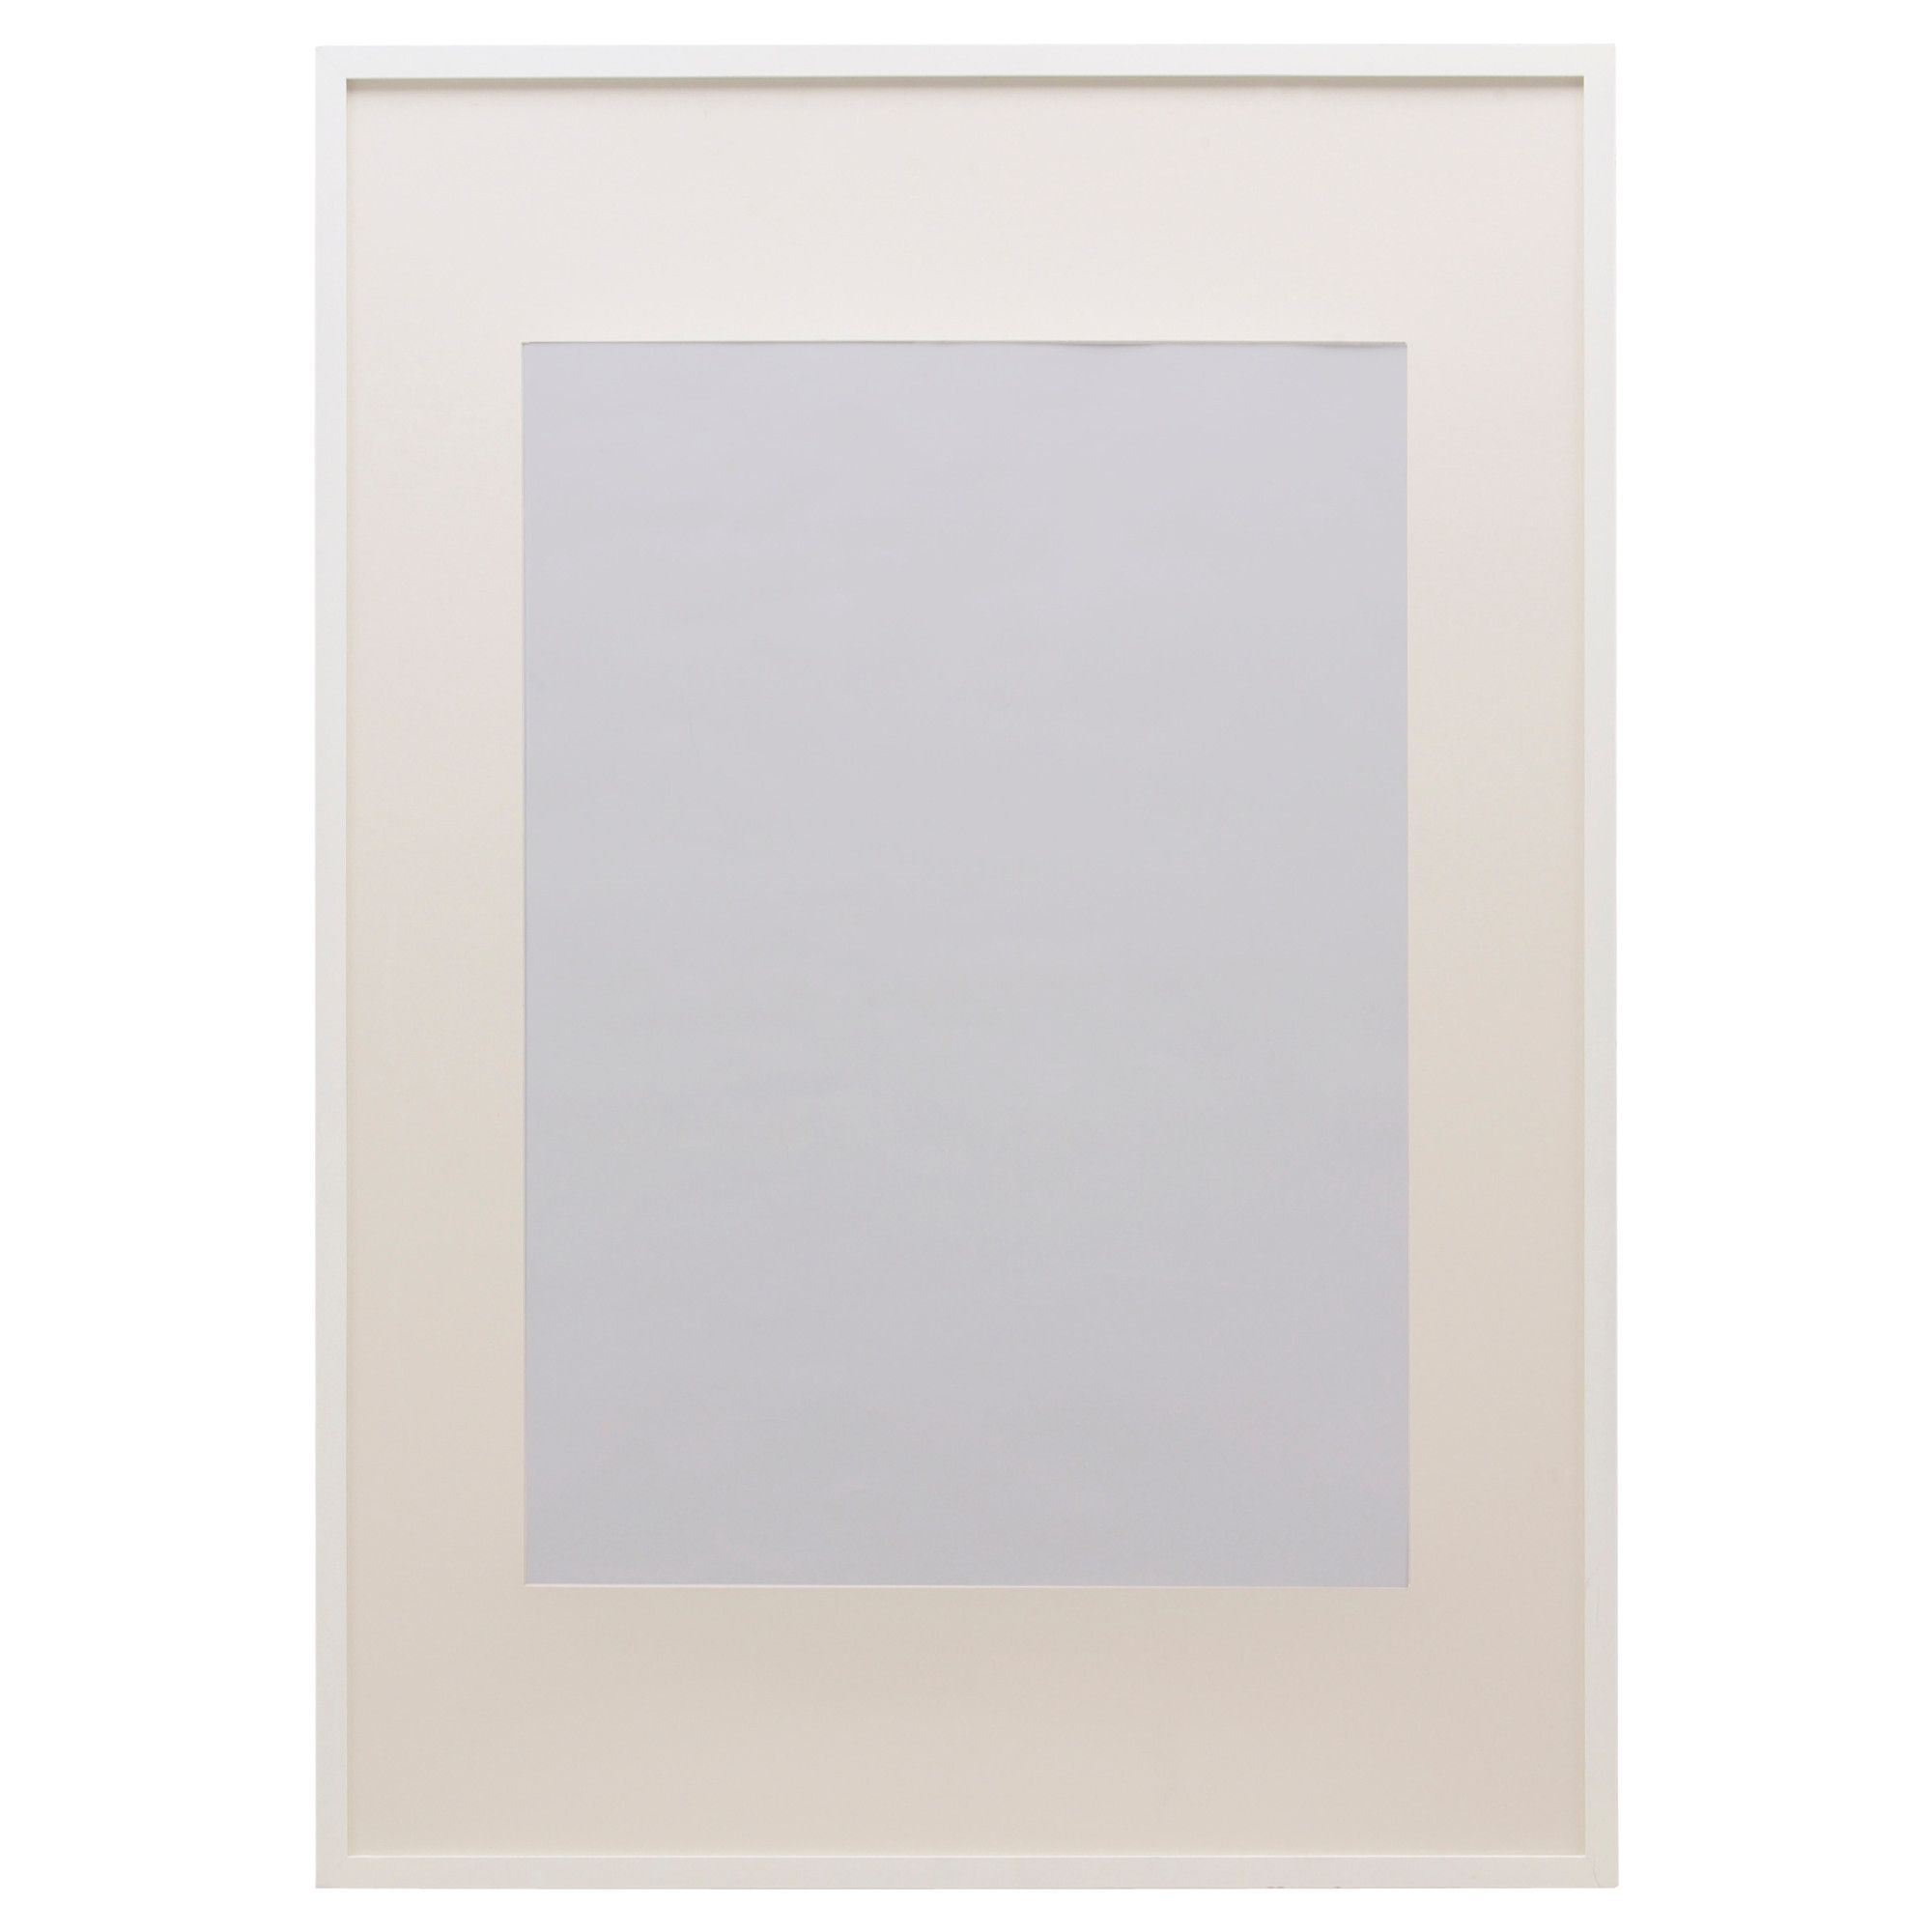 Ribba Bilderrahmen 50x70 Weiß Ikea Ribba White Frame House Frames On Wall Ribba Frame